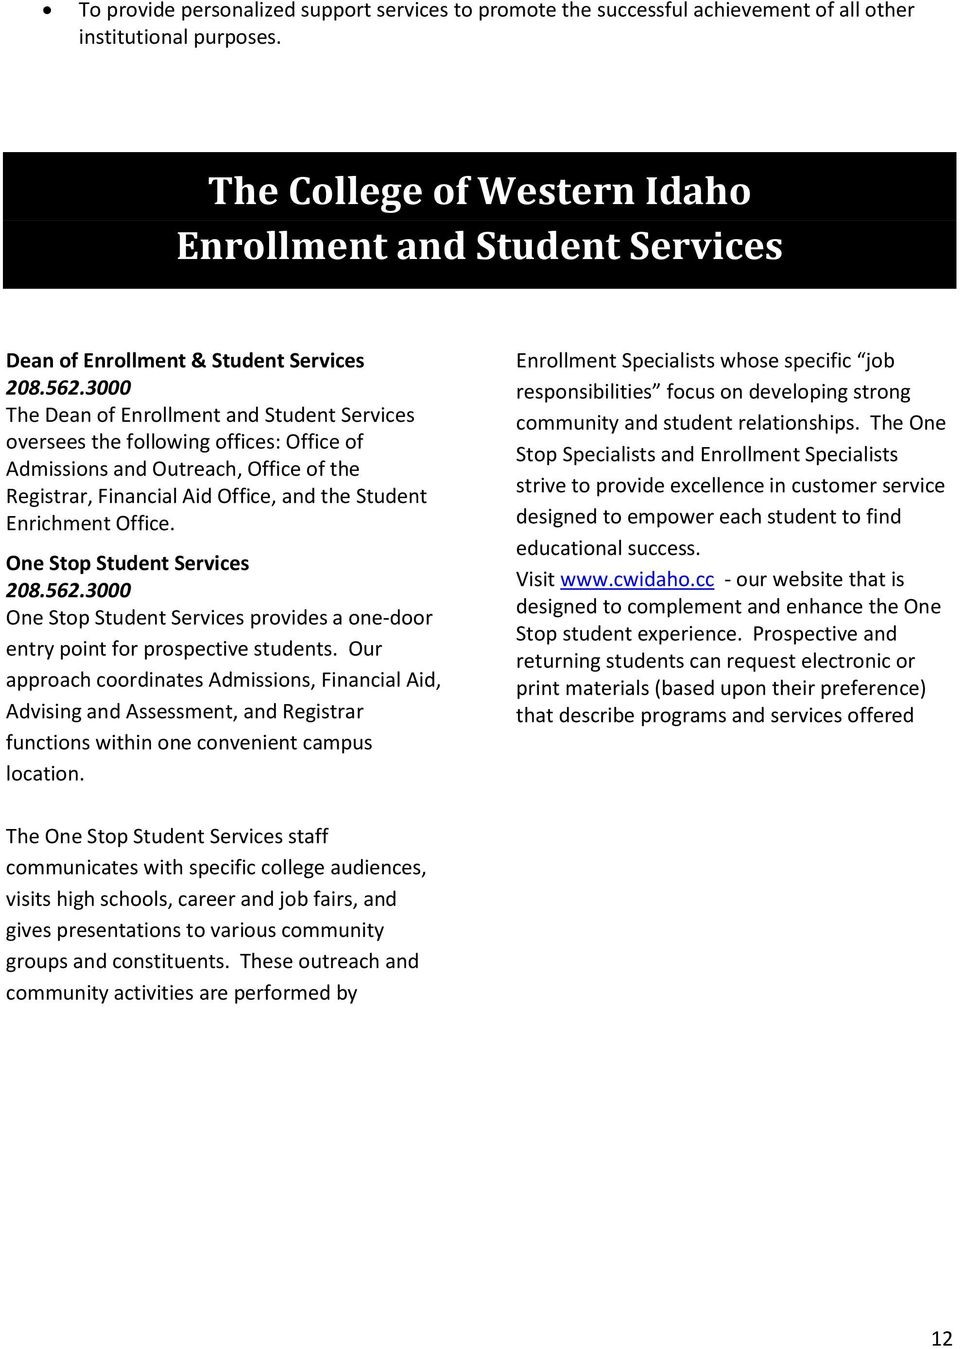 3000 The Dean of Enrollment and Student Services oversees the following offices: Office of Admissions and Outreach, Office of the Registrar, Financial Aid Office, and the Student Enrichment Office.